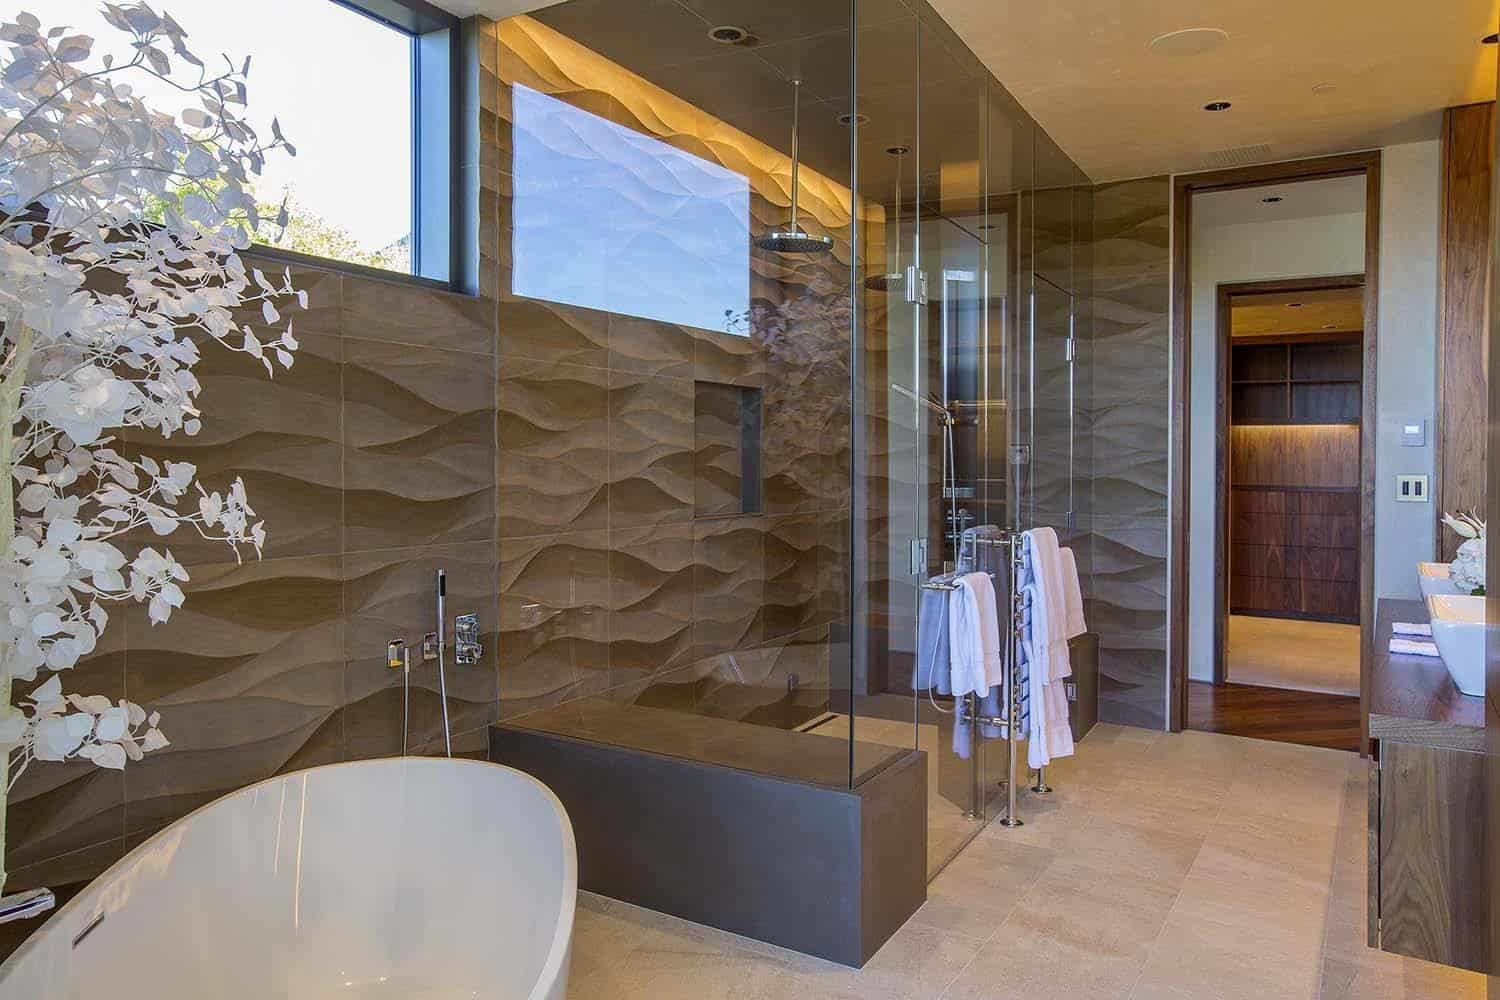 Modern-Residence-Colorado-Poss Architecture-35-1 Kindesign